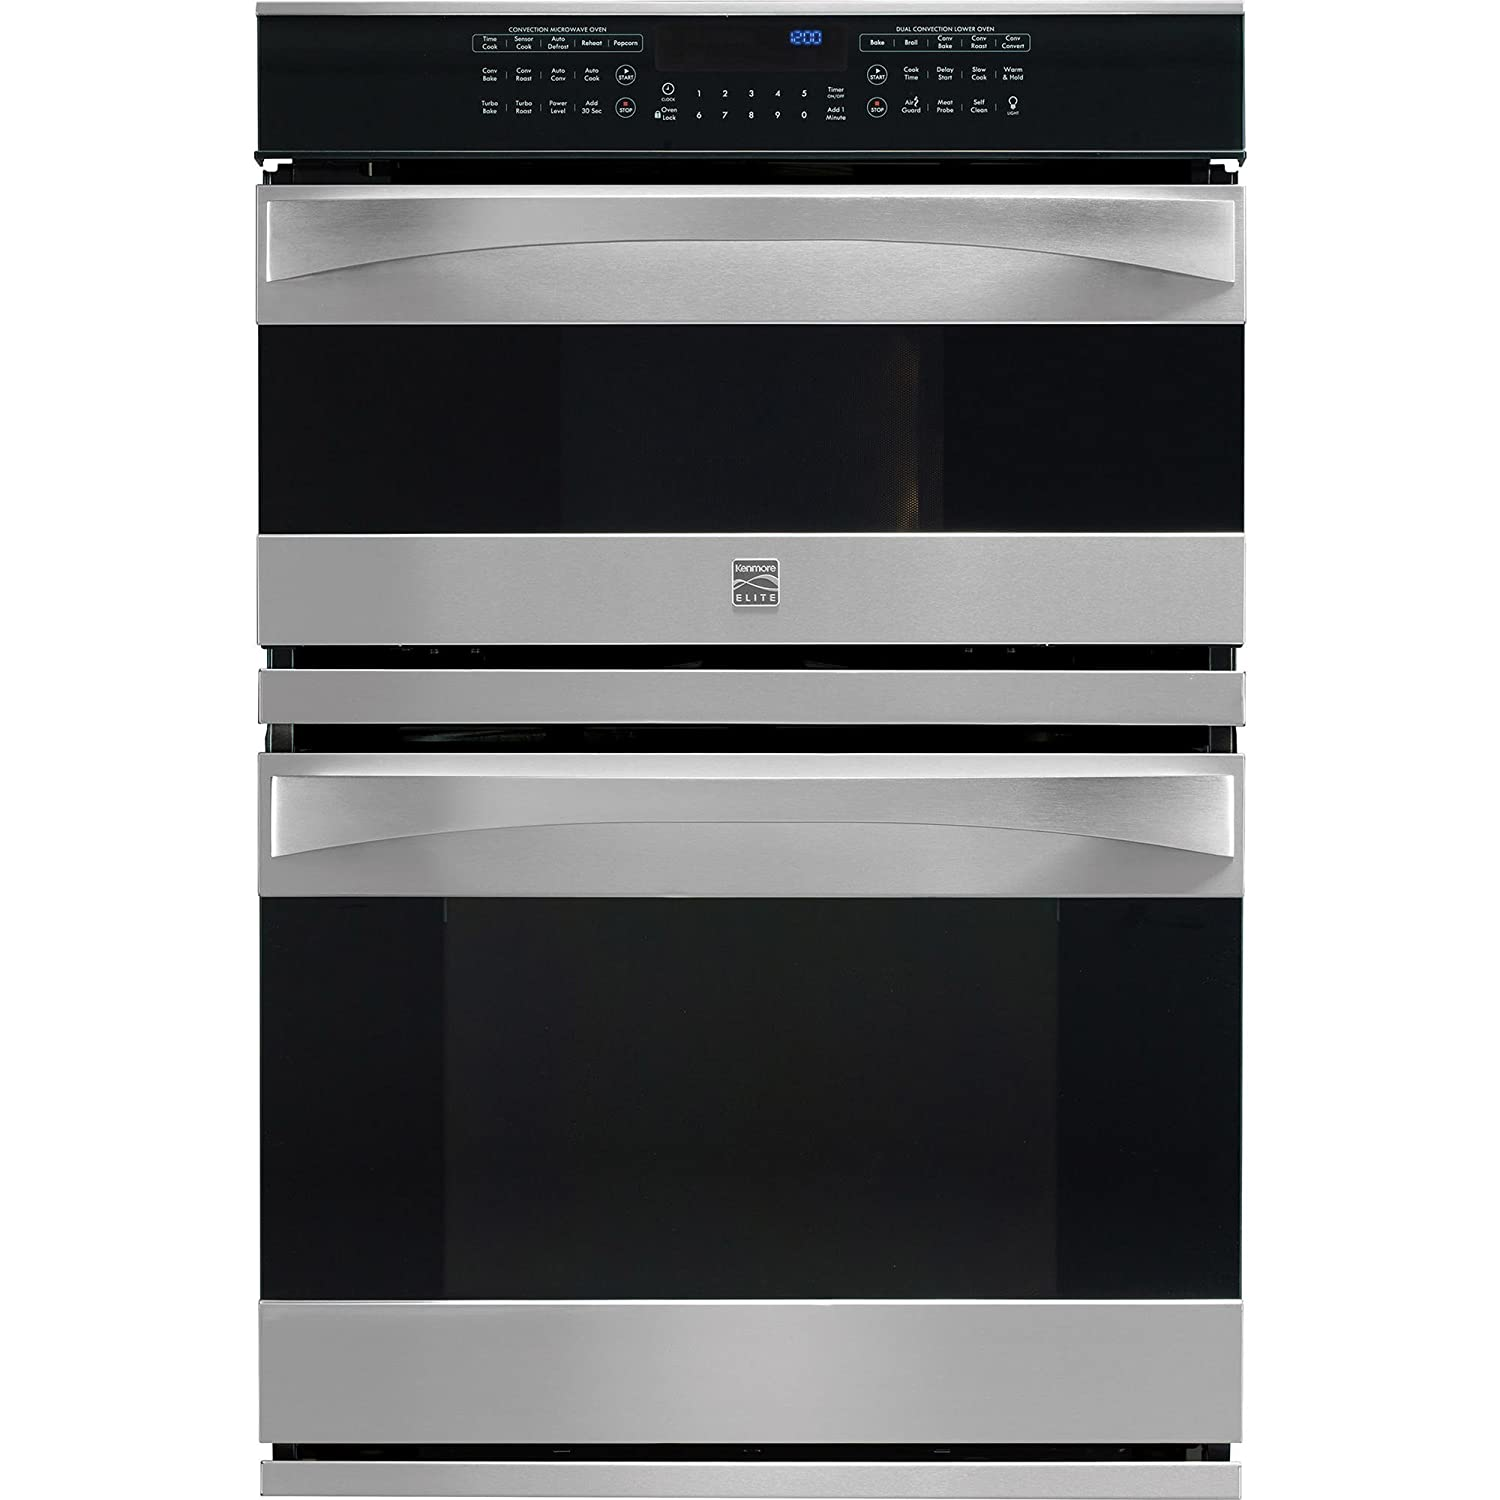 Kenmore Elite 49113 30' Electric Wall Oven/Microwave Combination in Stainless Steel, includes delivery and hookup (Available in select cities only) Sears Brands Management Corporation (Kenmore) 02249113